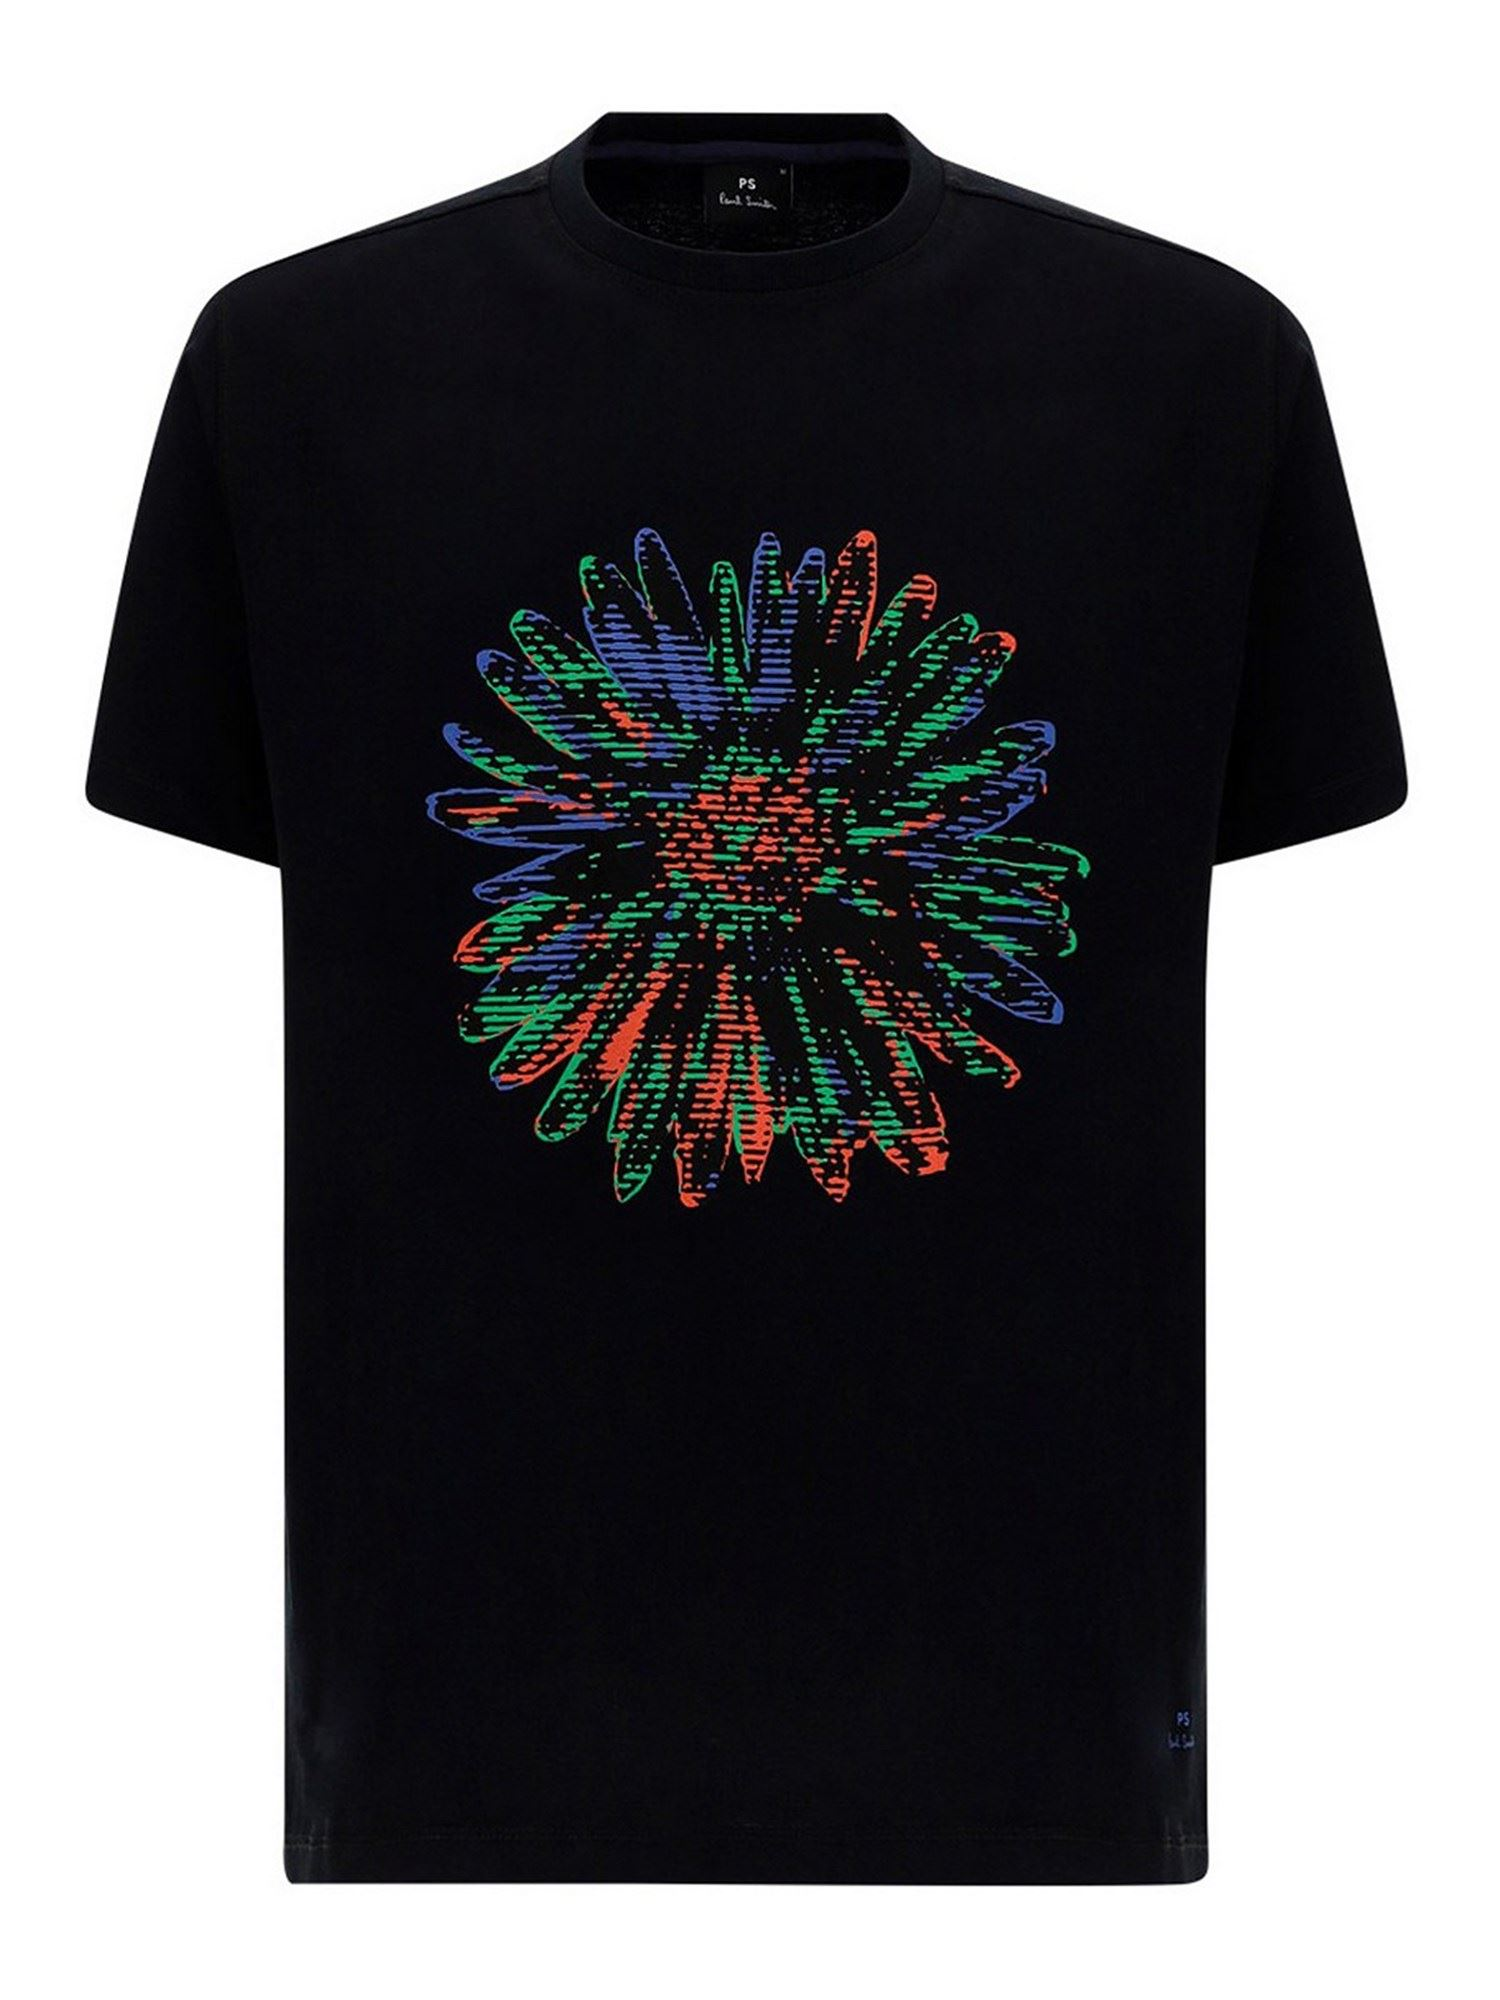 PAUL SMITH FLOWER T-SHIRT IN BLACK